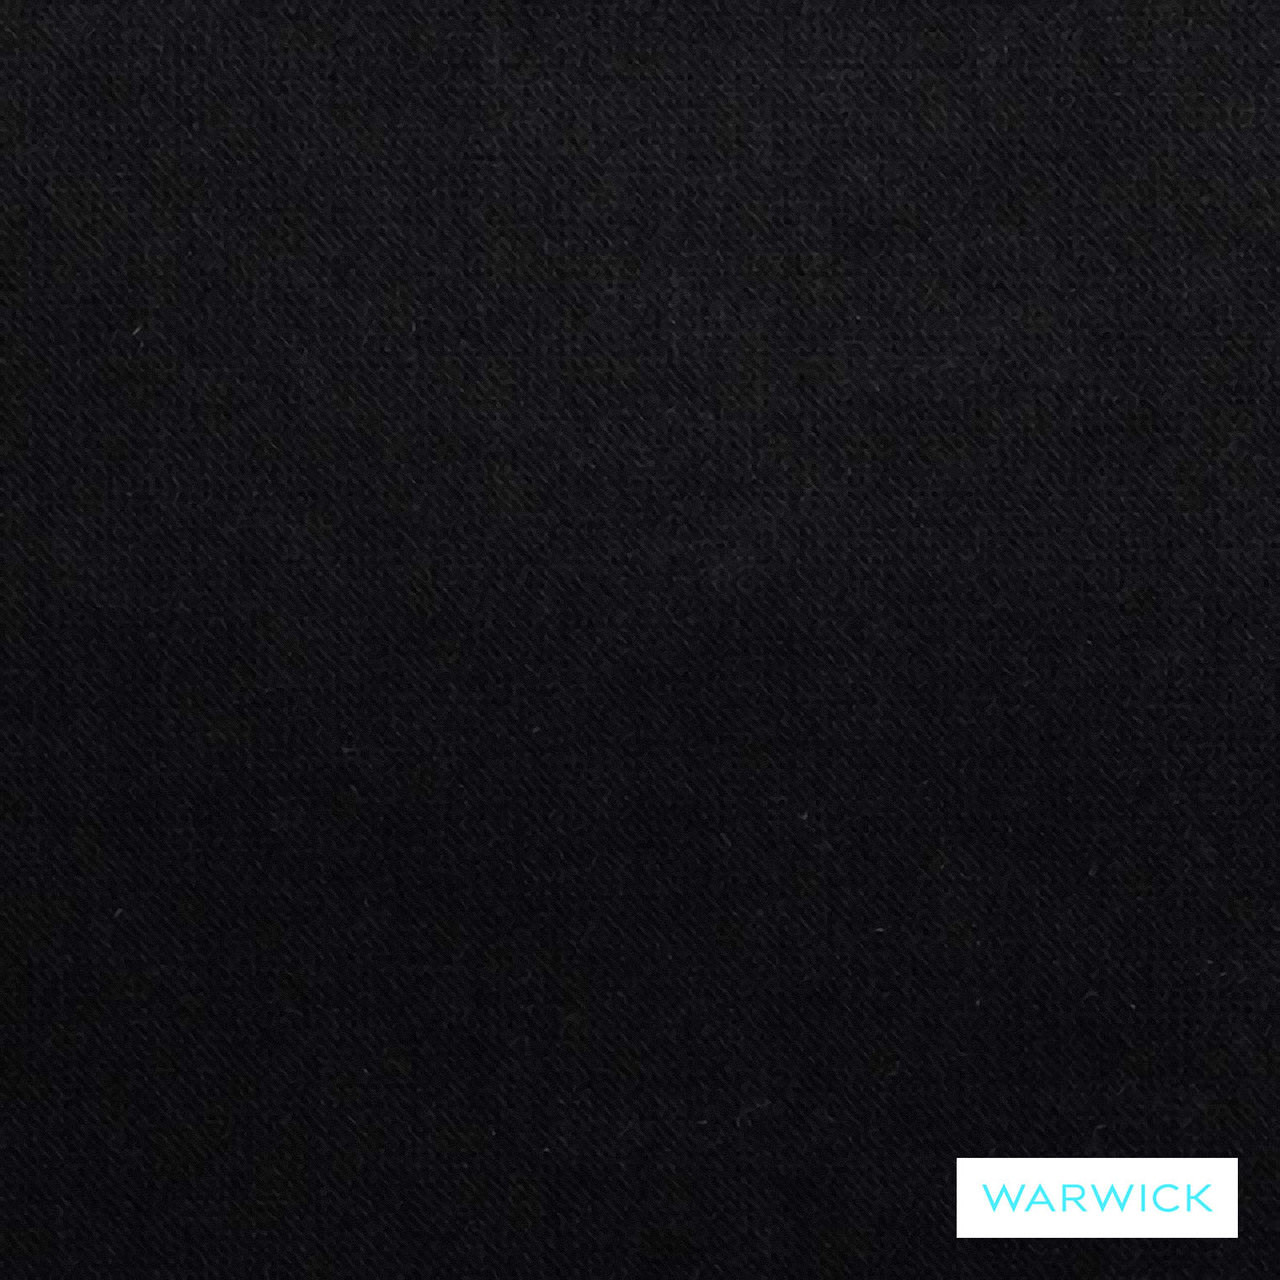 Cosmic' | Upholstery Fabric - Black, Plain, Synthetic fibre, Washable, Black - Charcoal, Commercial Use, Halo